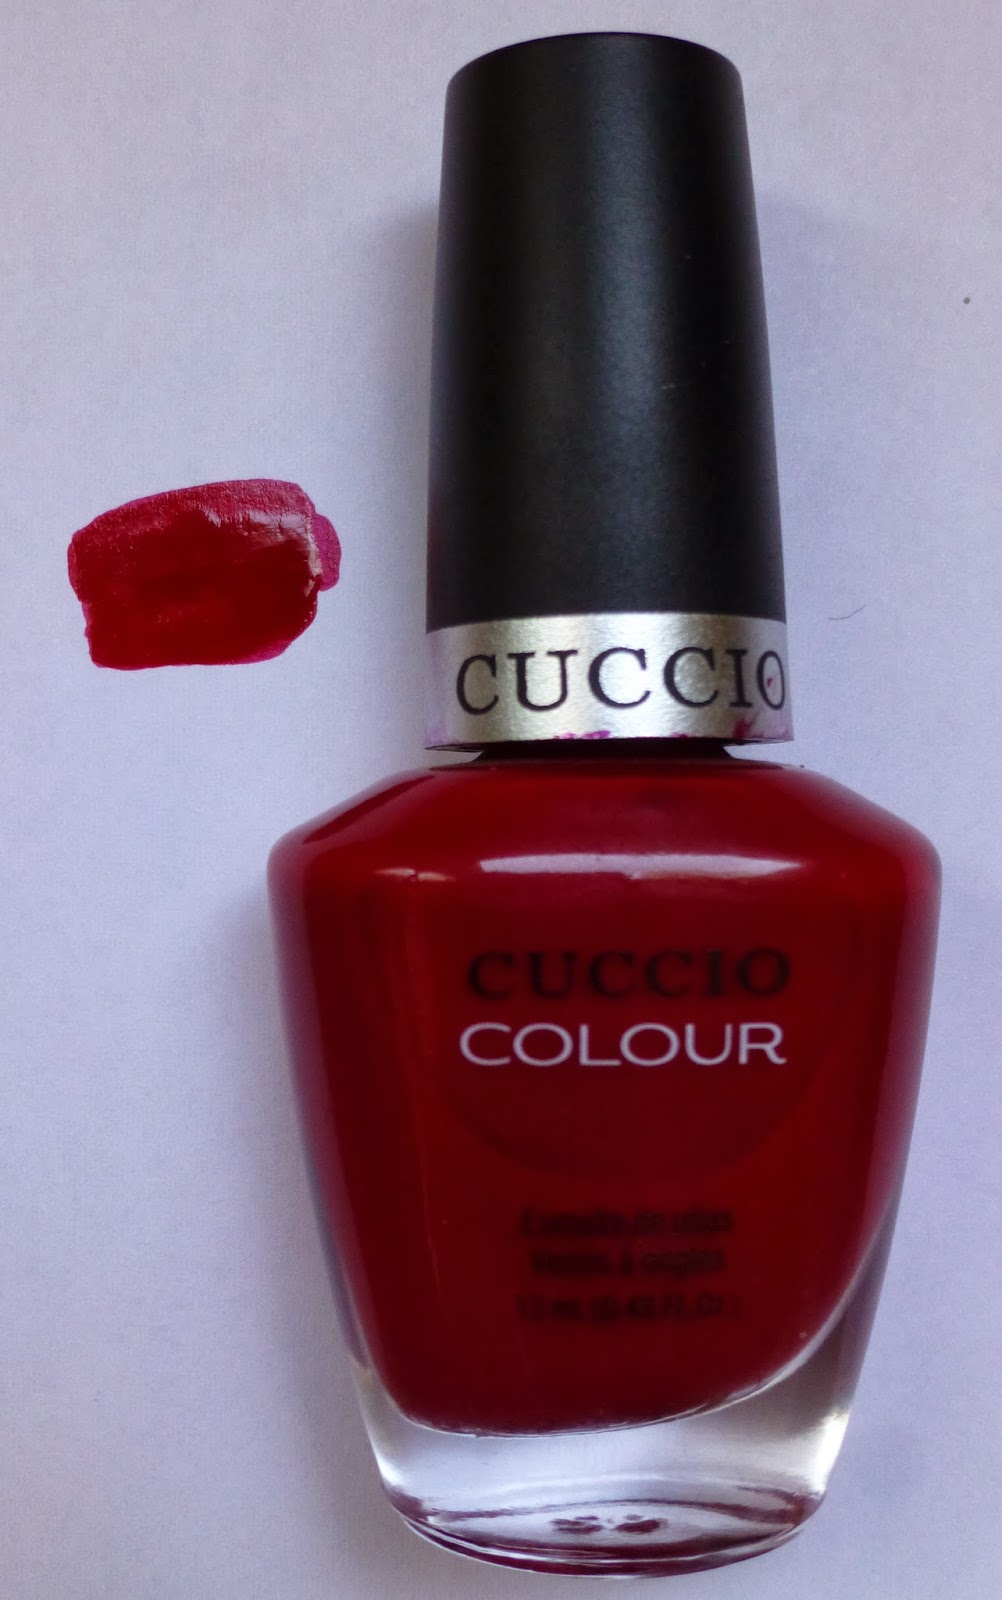 Cuccio_Colour_Professional_Nail_Lacquer_review_red_Shanghai